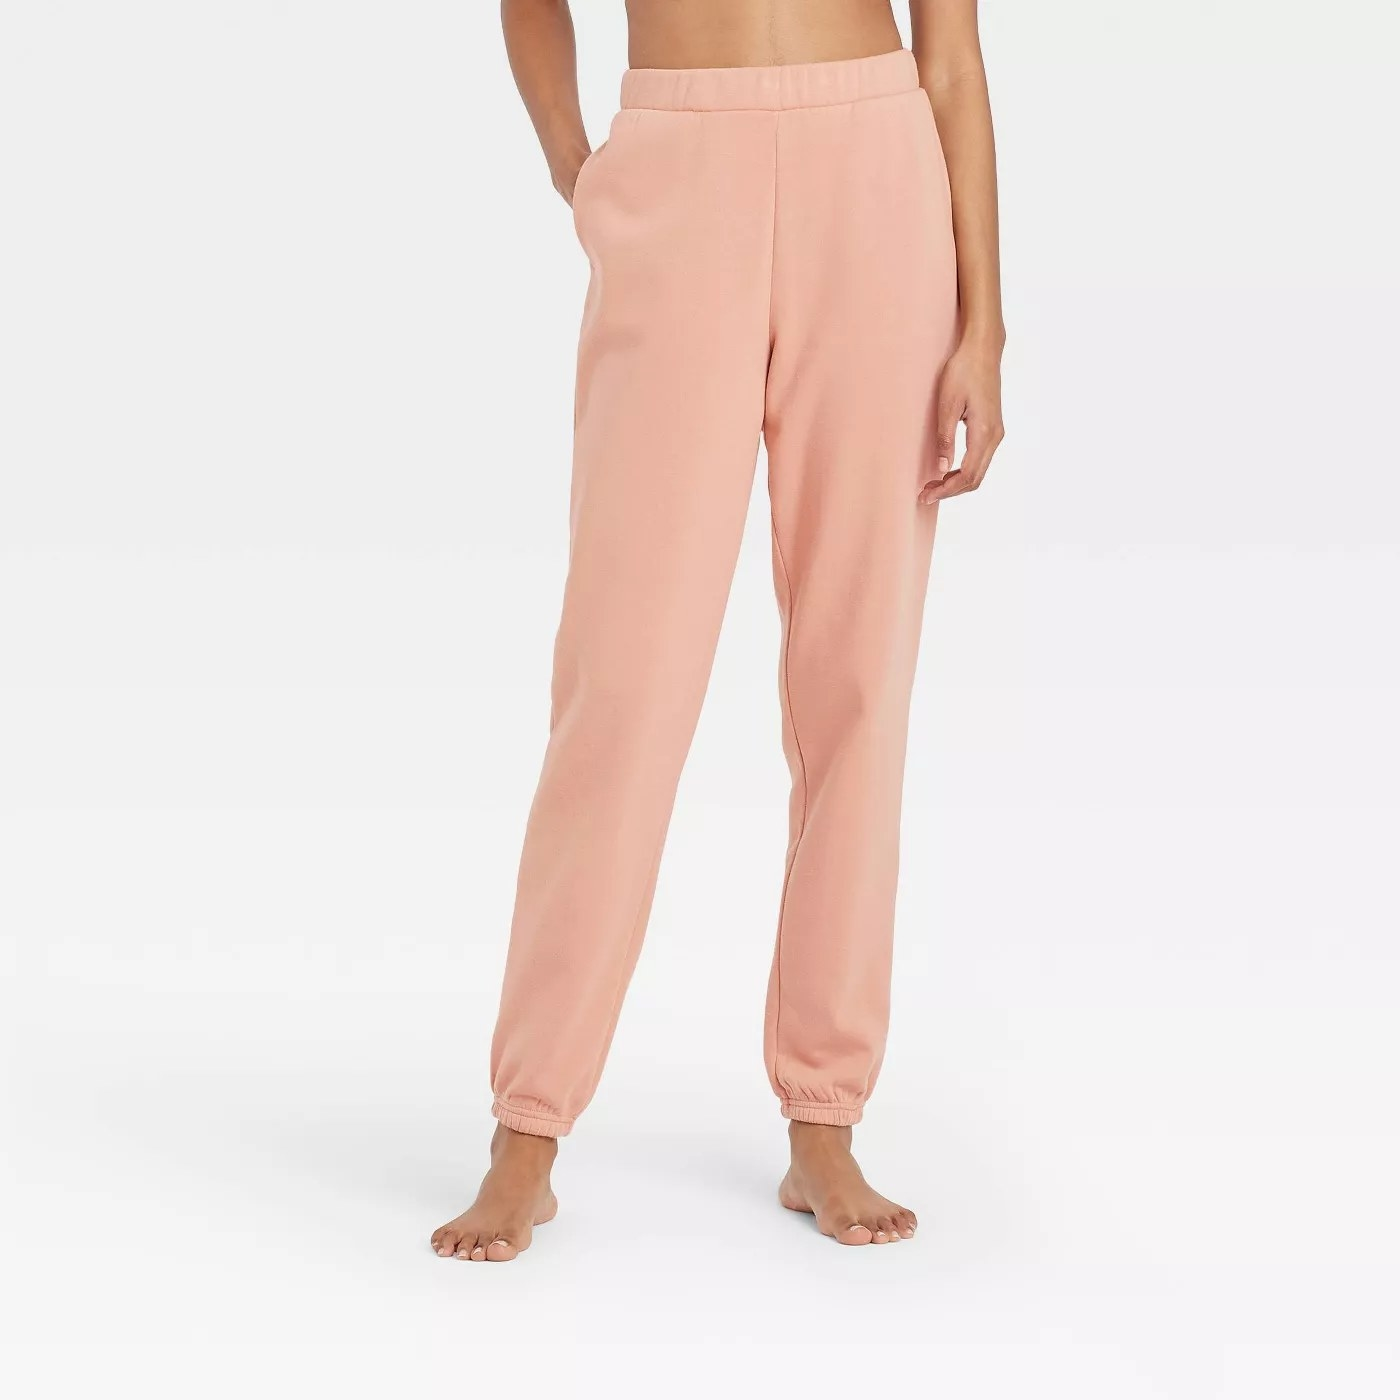 The pink joggers